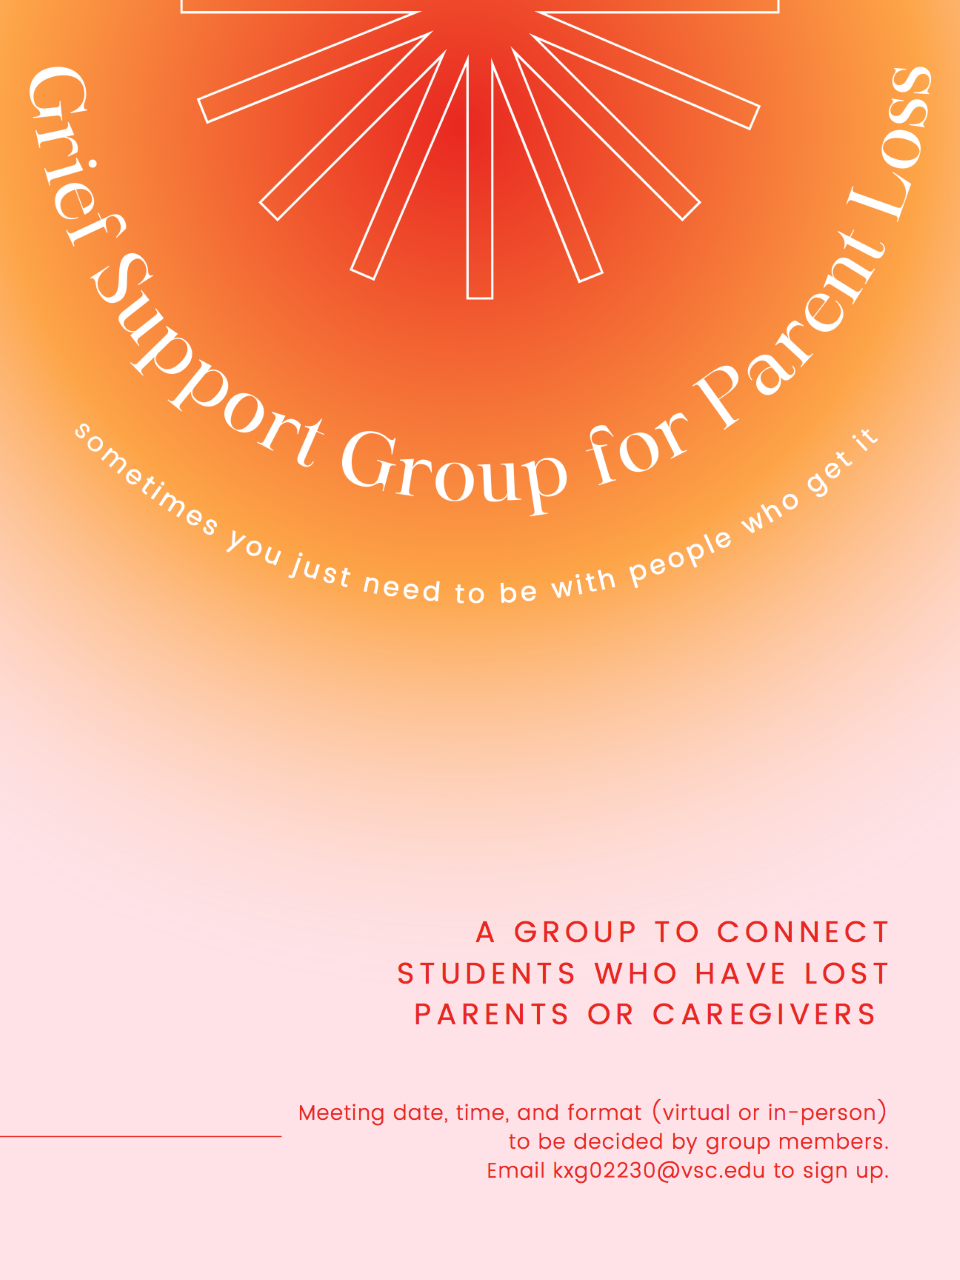 Grief Support Group for Parent Loss